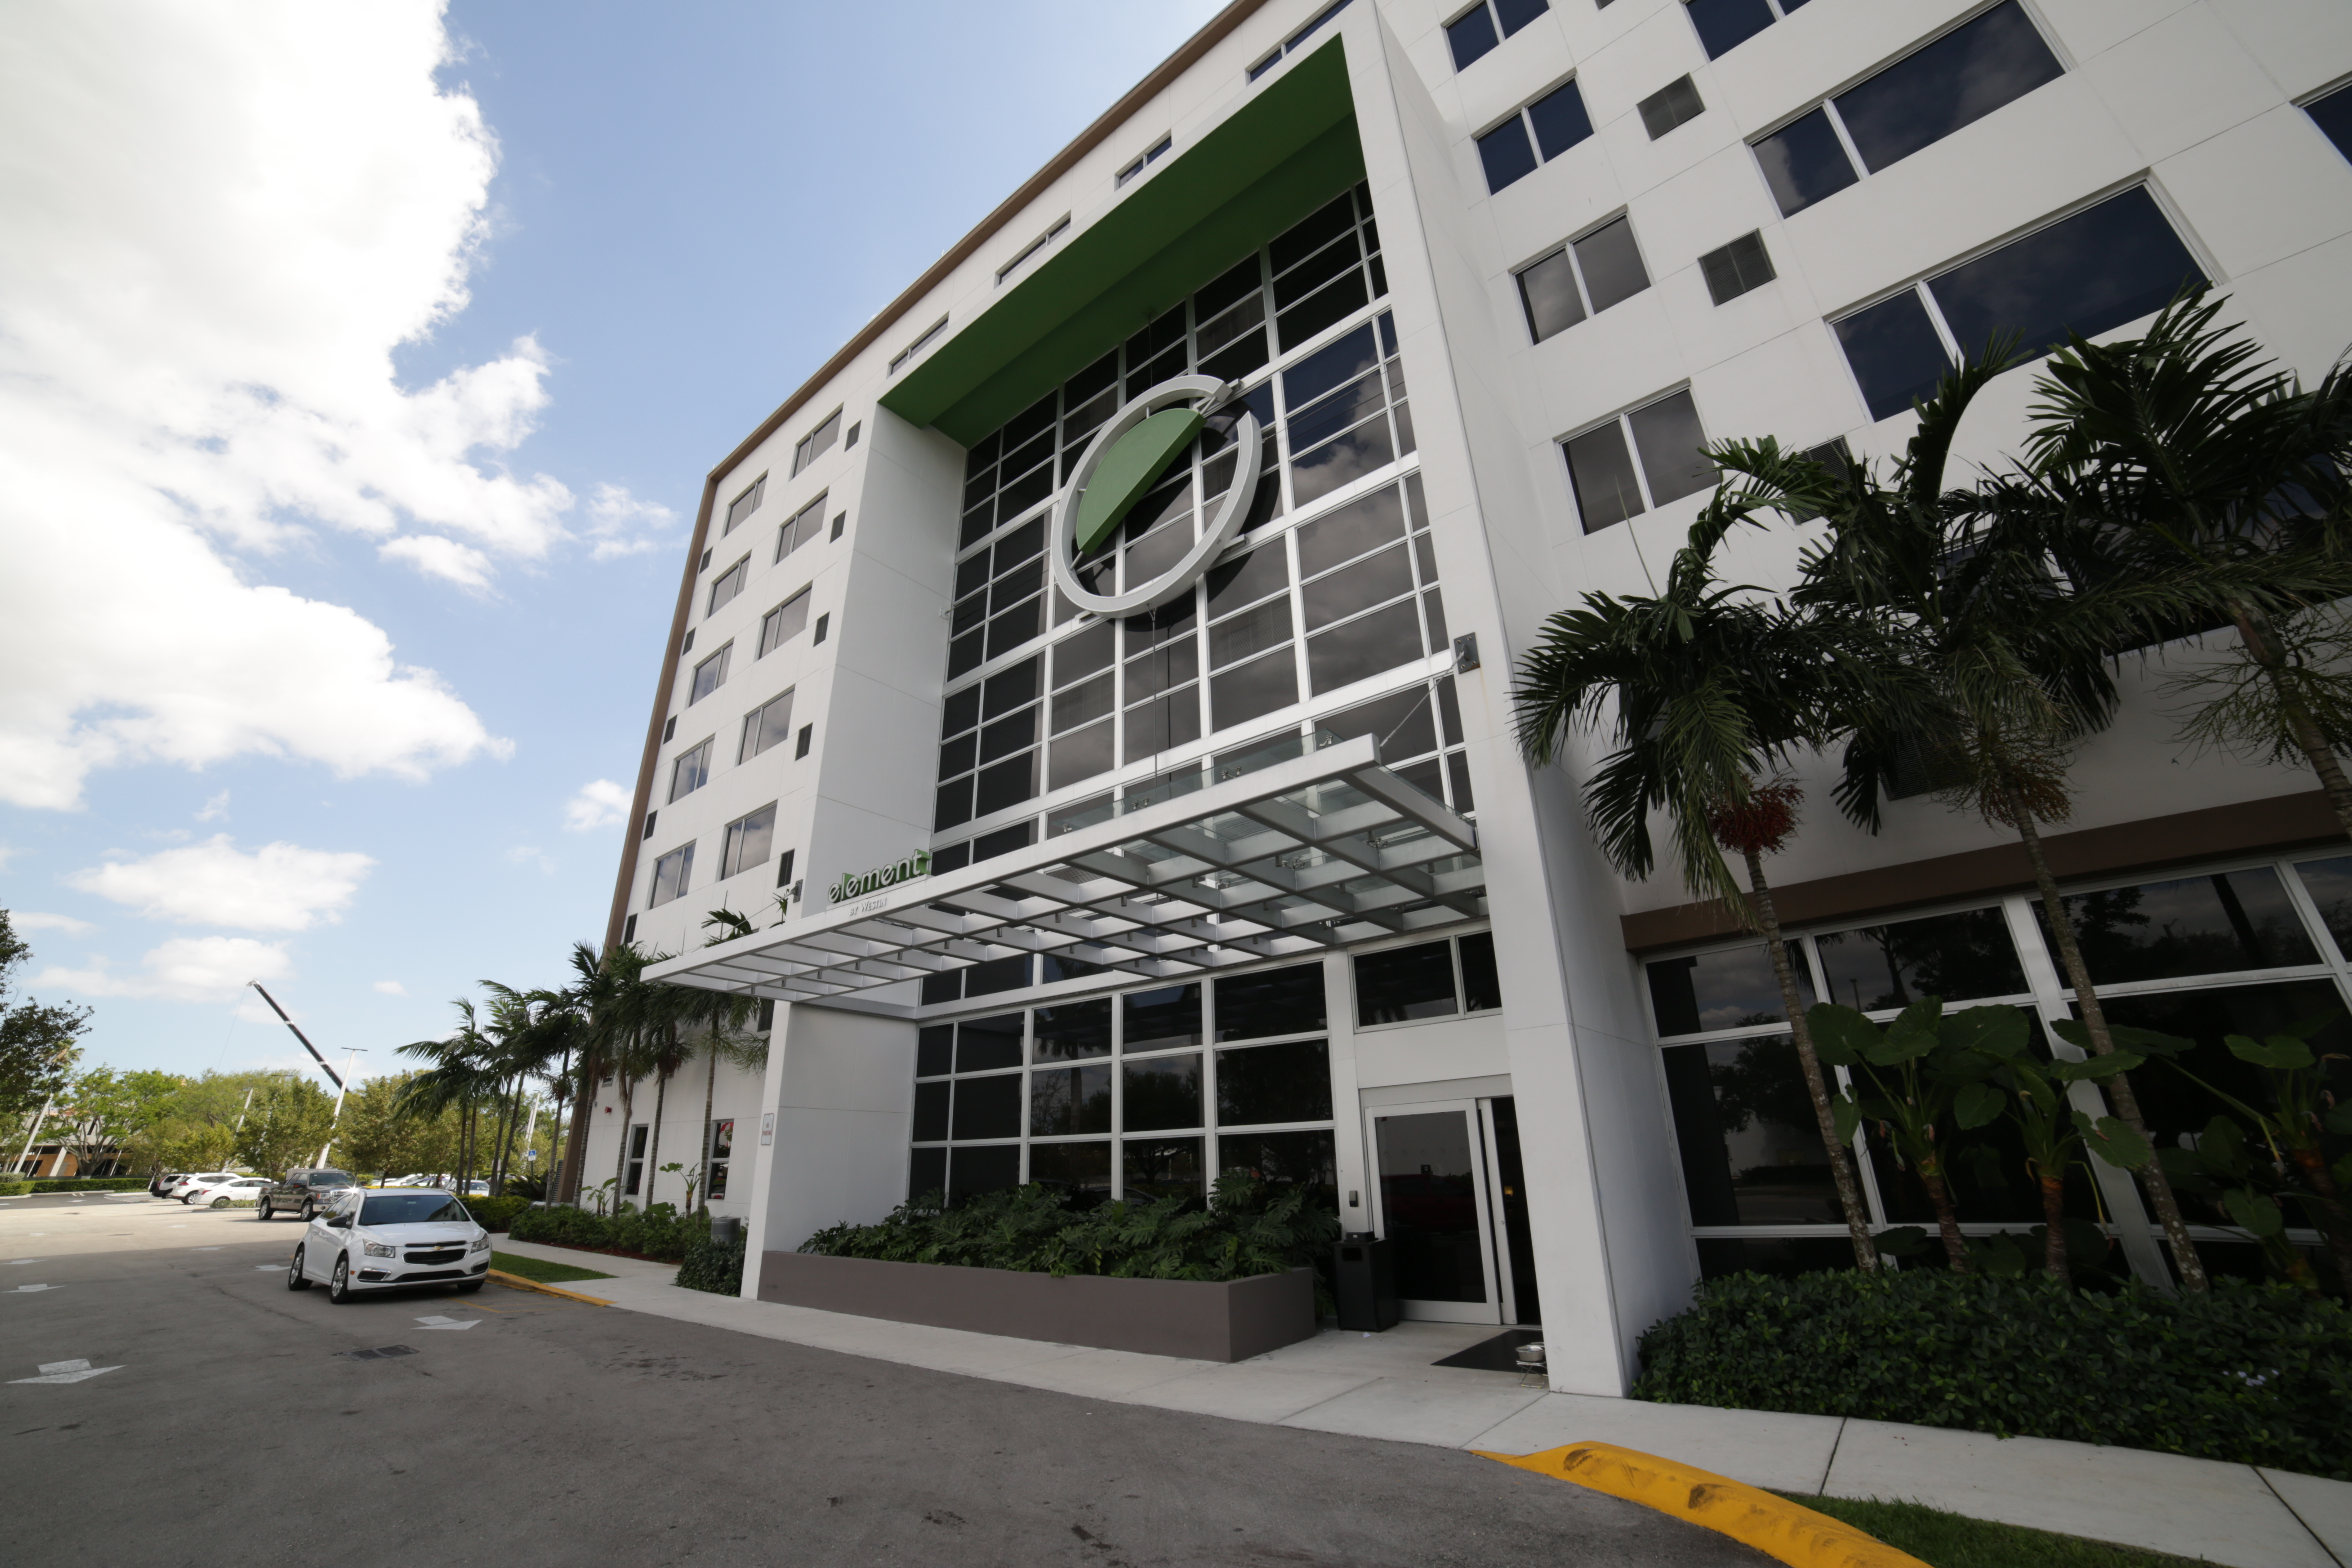 Element Hotel in Doral